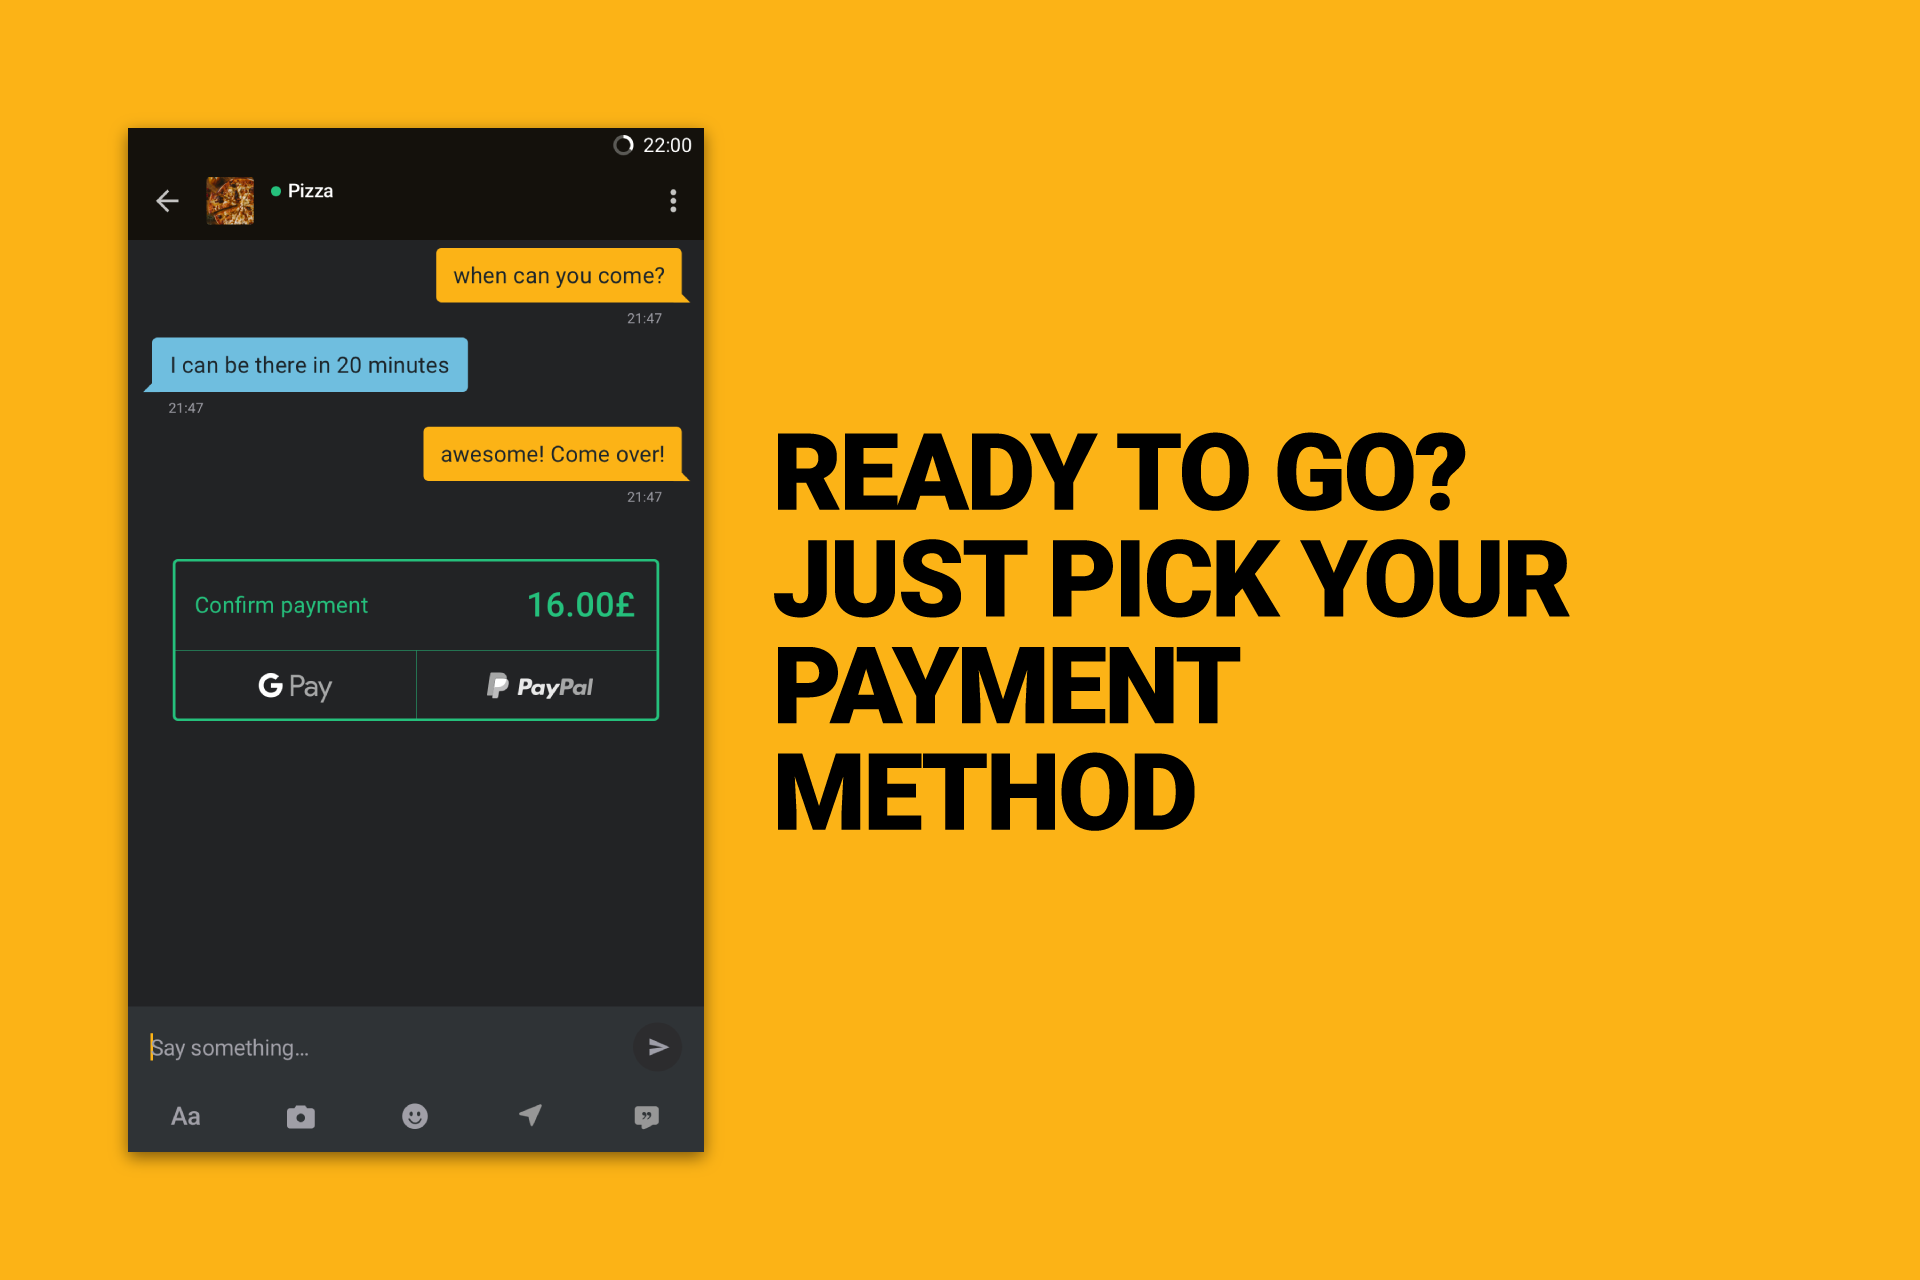 Confirm payment method to purchase